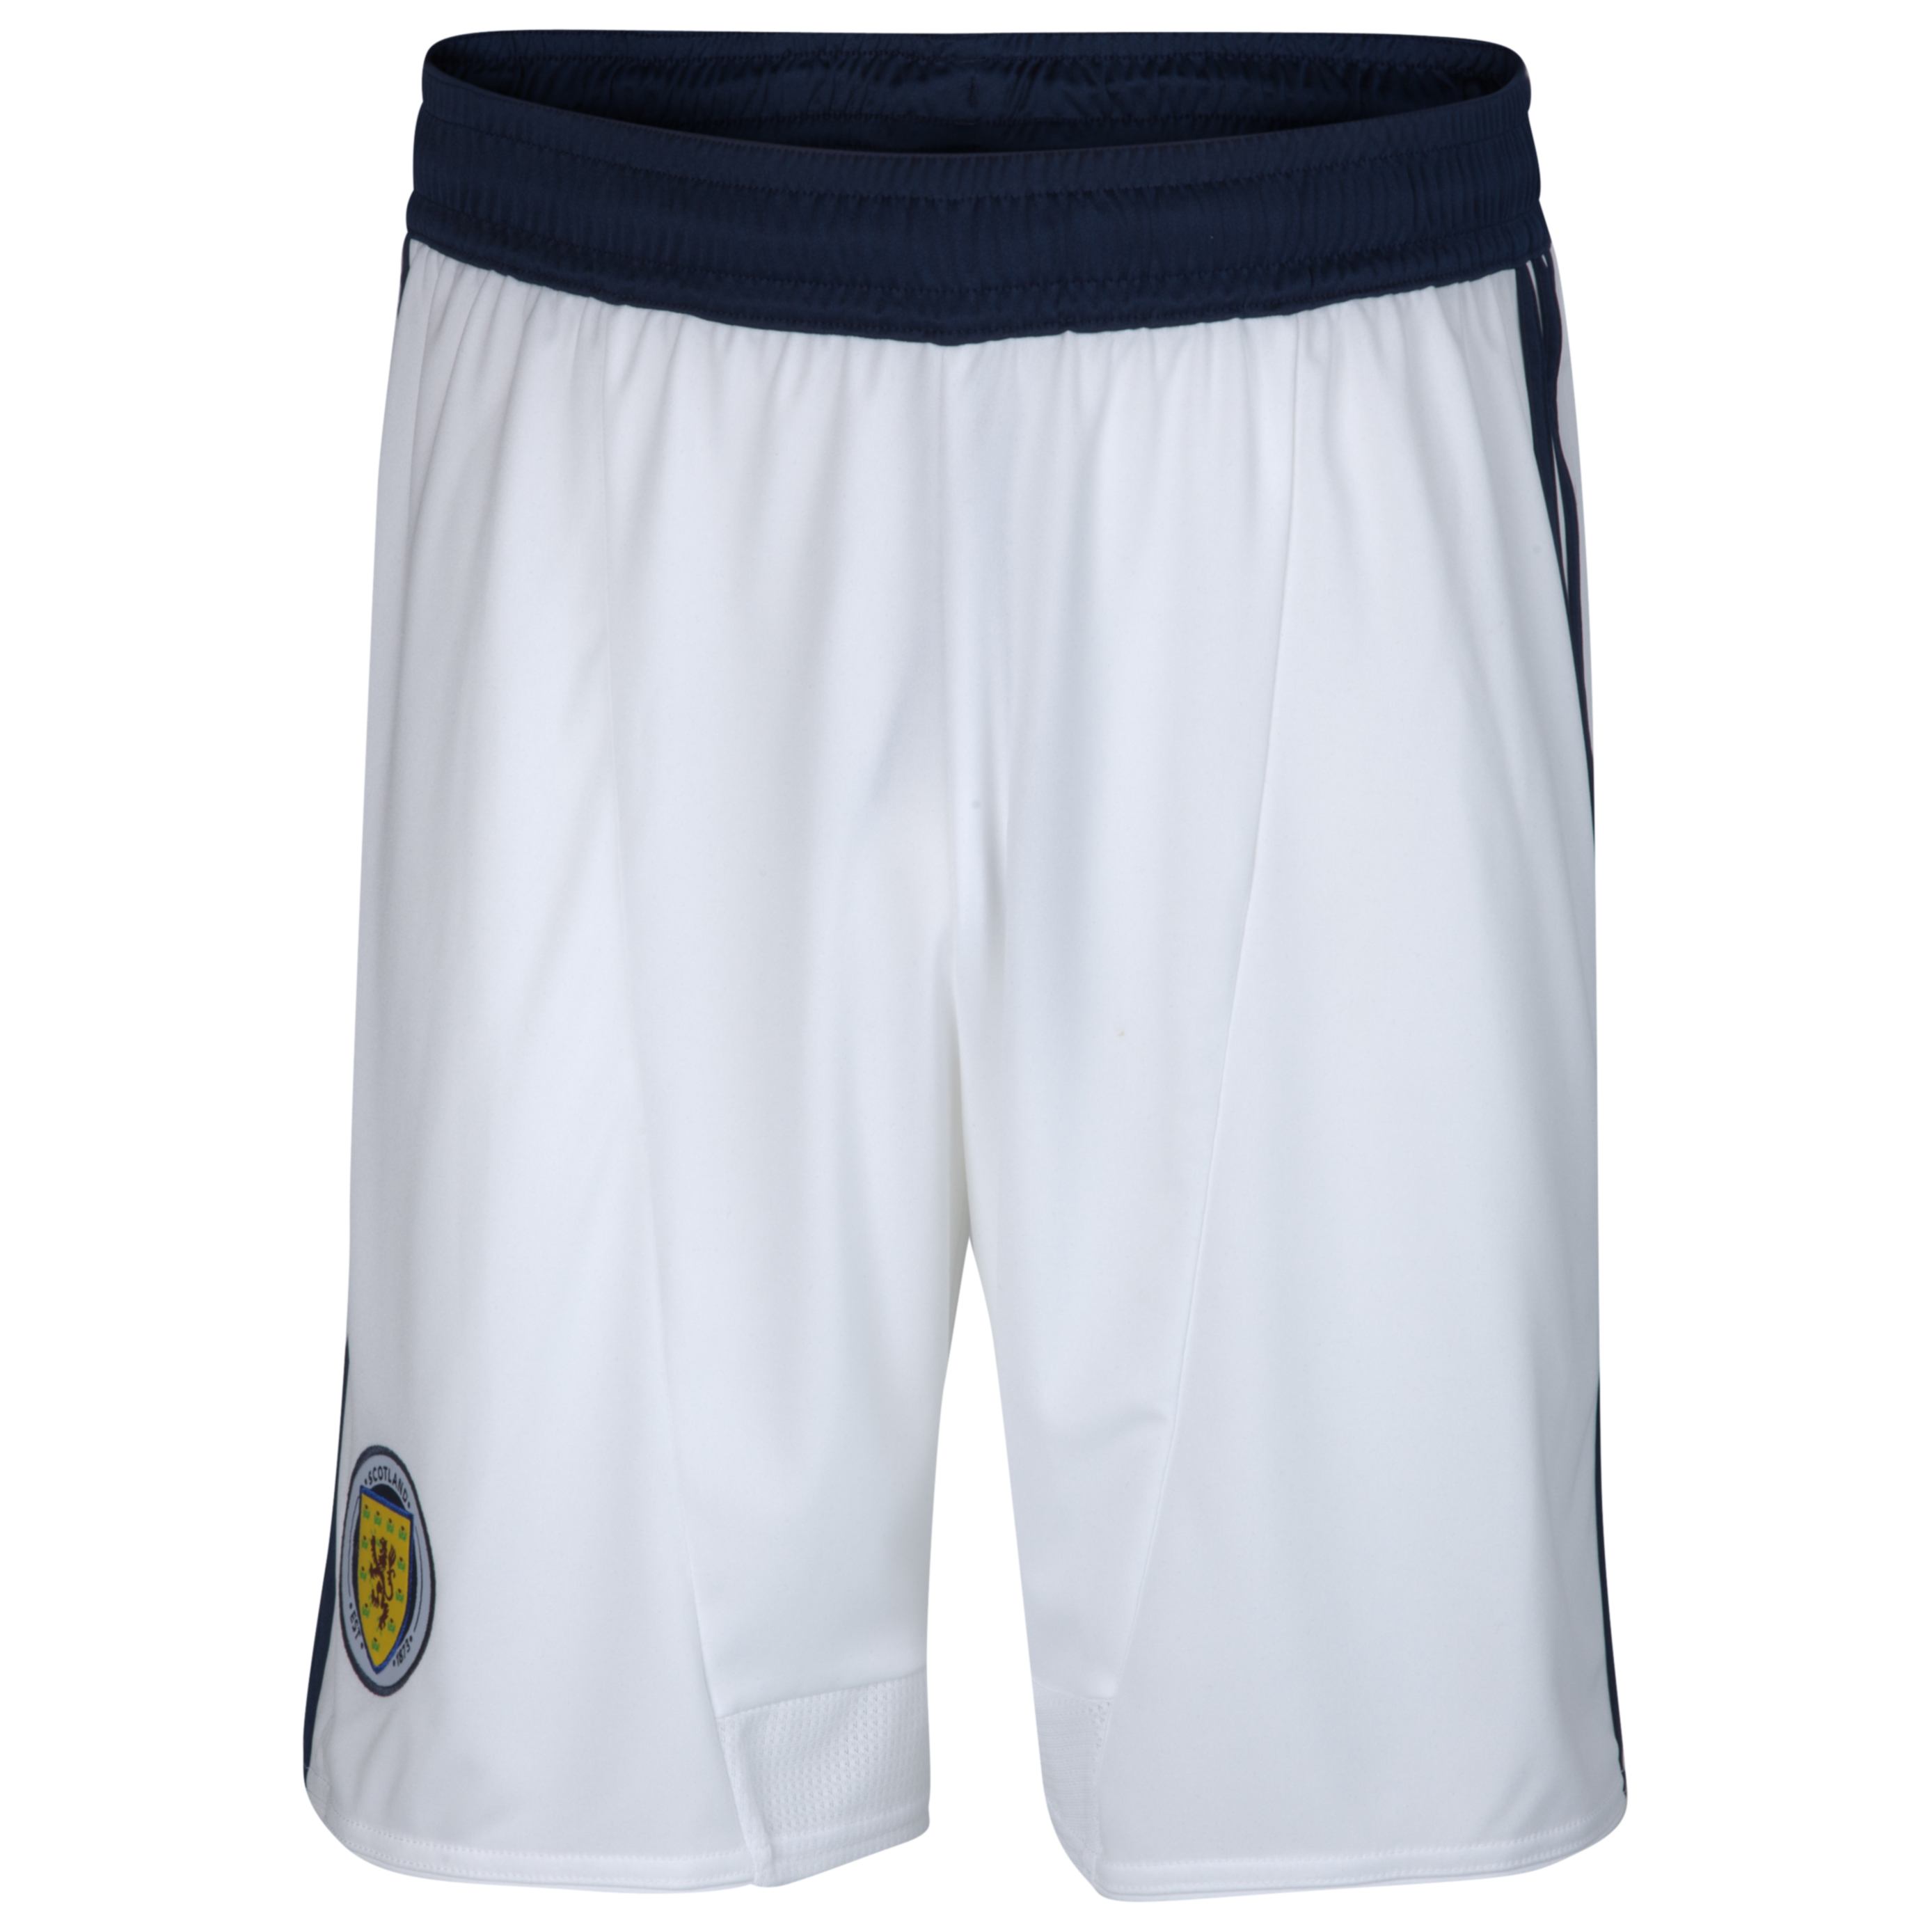 Scotland Home Short 2012/14 - Kids - White/Dark Indigo